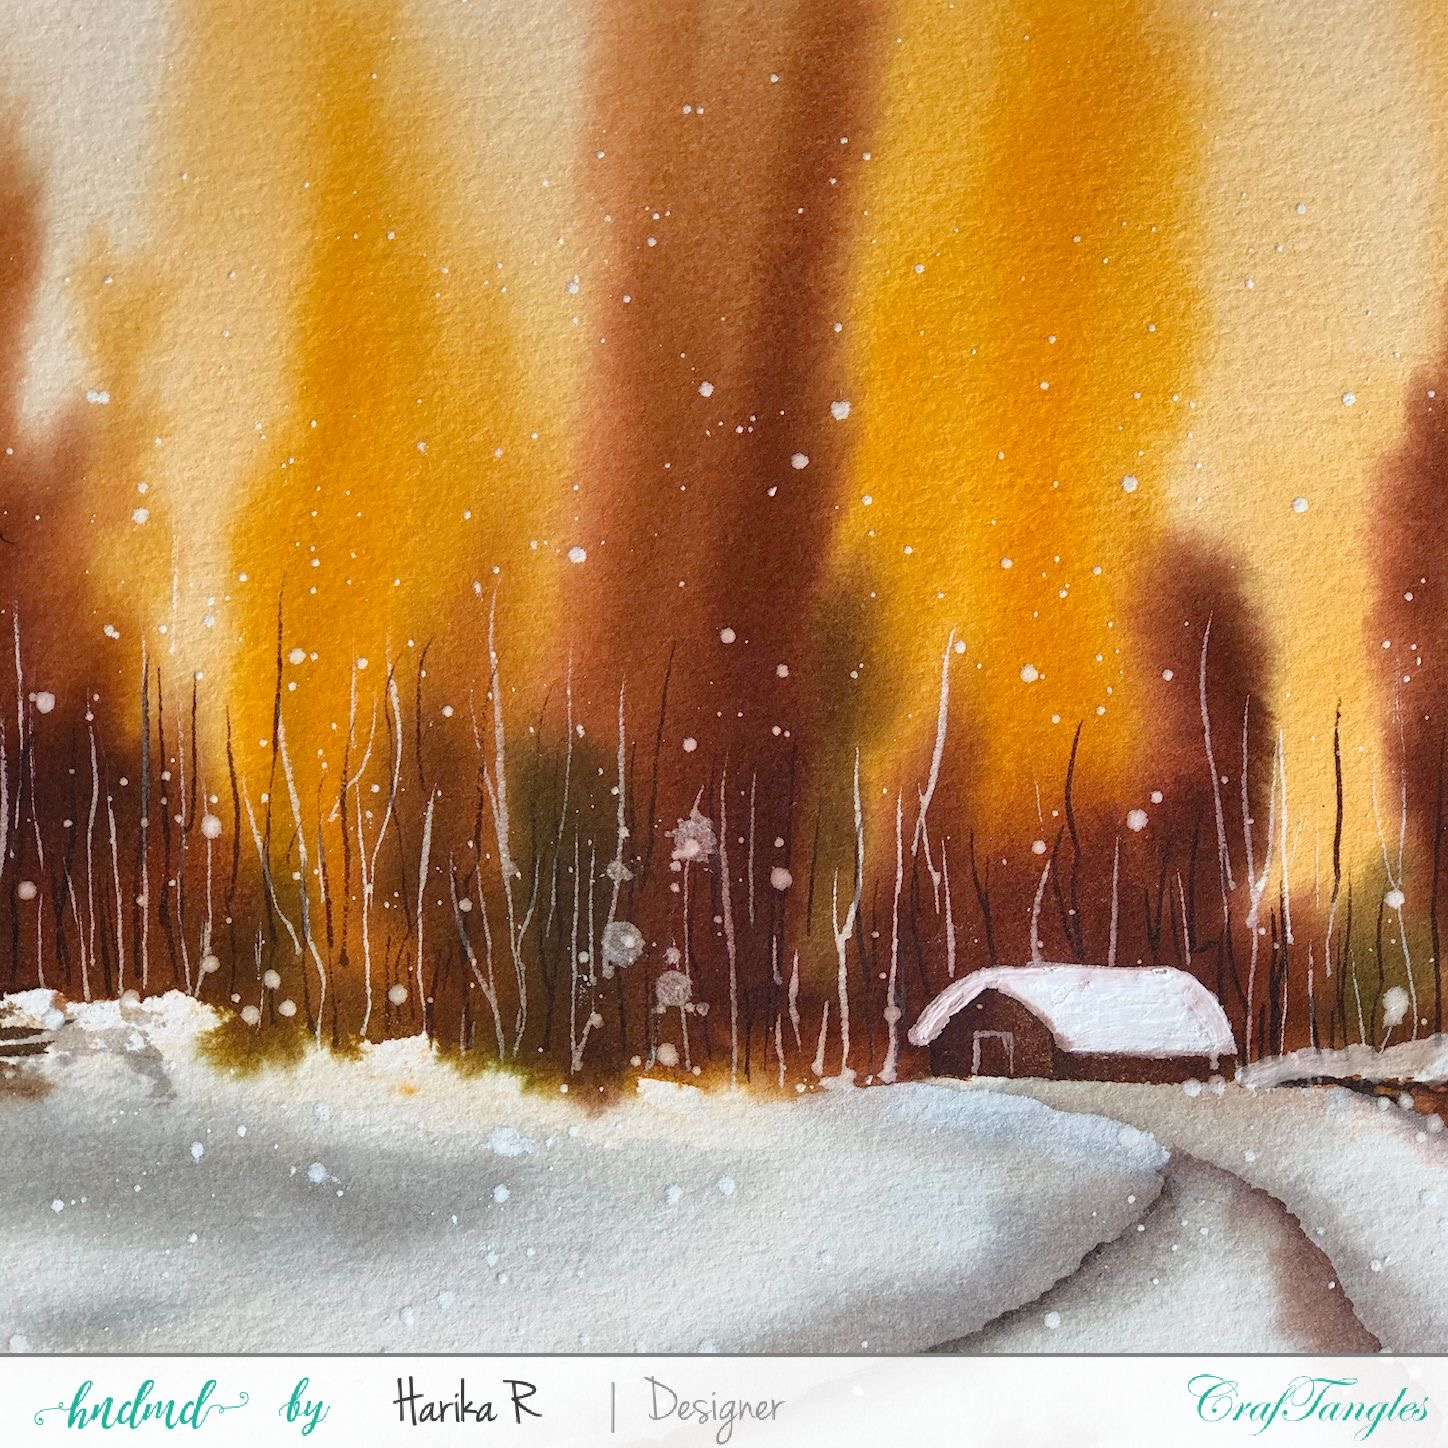 Watercolor Edition - Christmas with a beautiful view 1